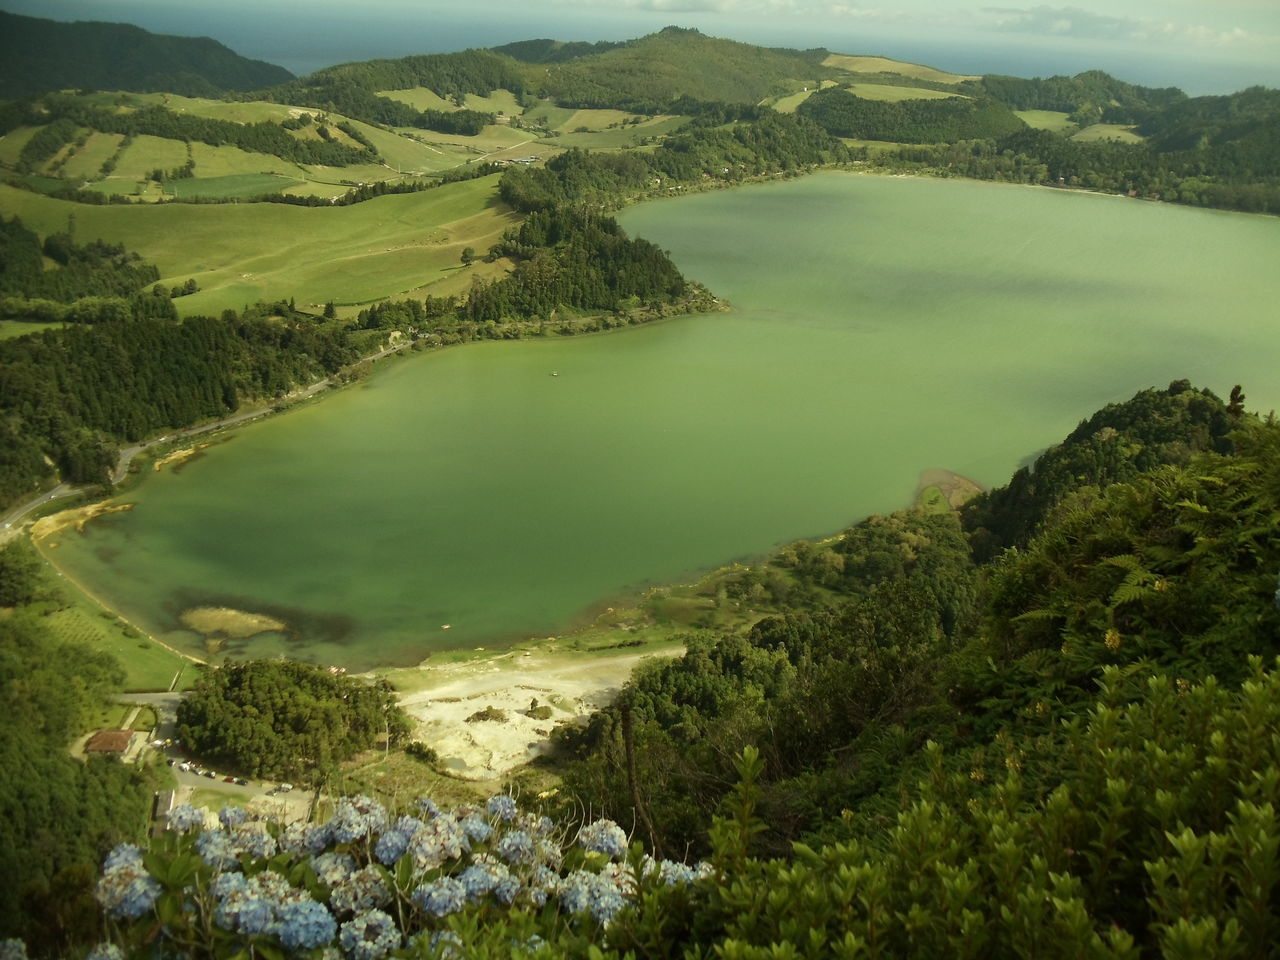 Azores Azores, S. Miguel Açores Beauty In Nature Day Landscape Nature No People Outdoors Saomiguel Scenics Water